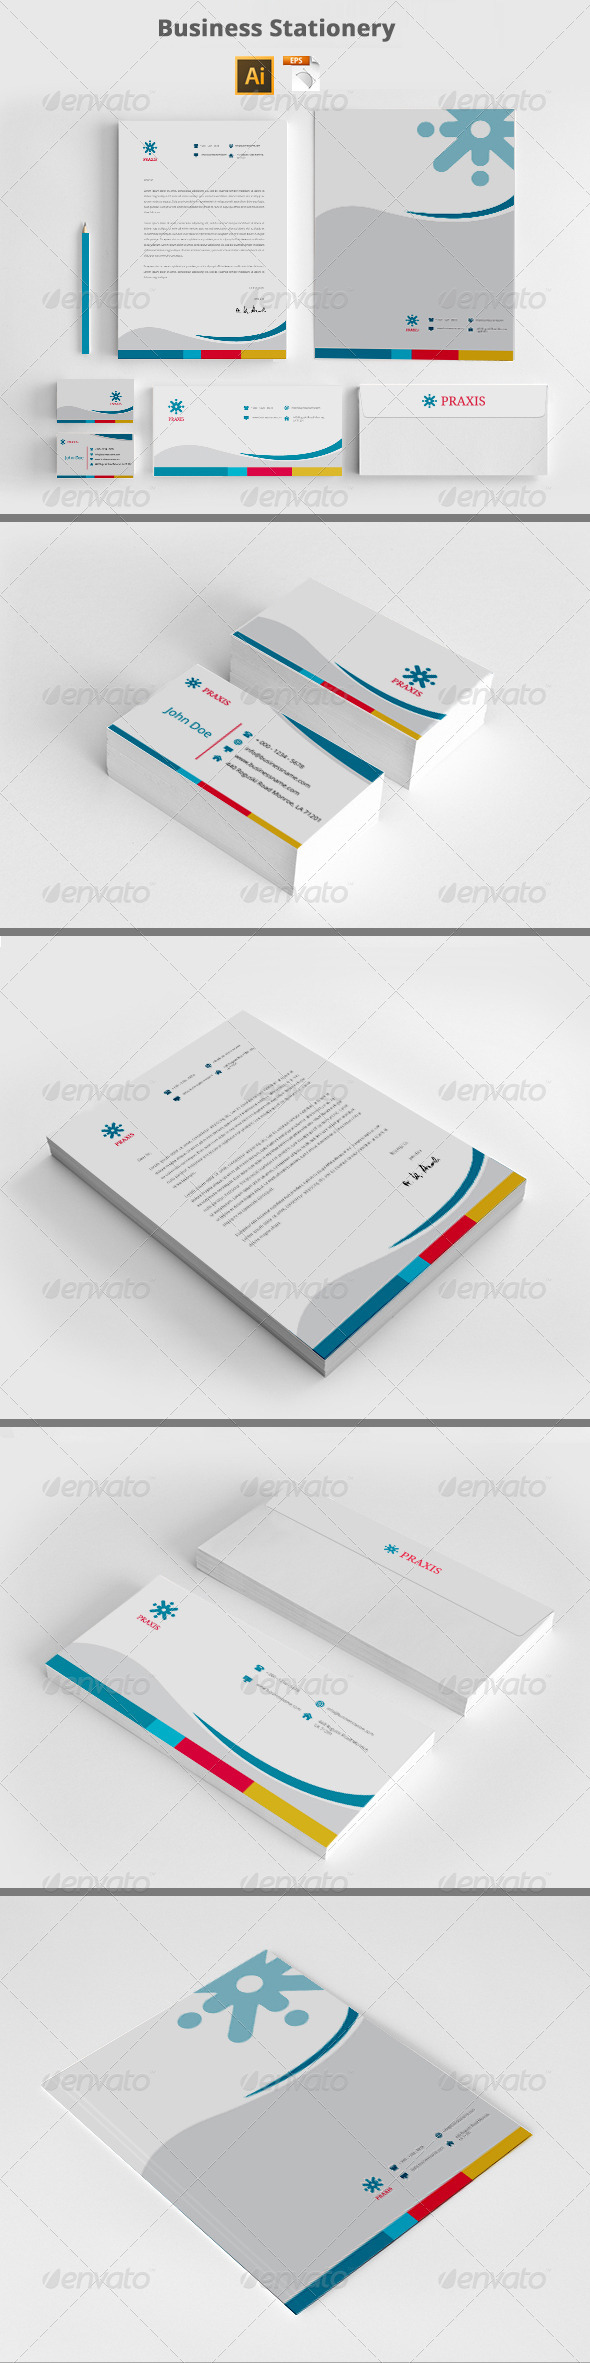 GraphicRiver Business Corporate Stationery Templates 8217438